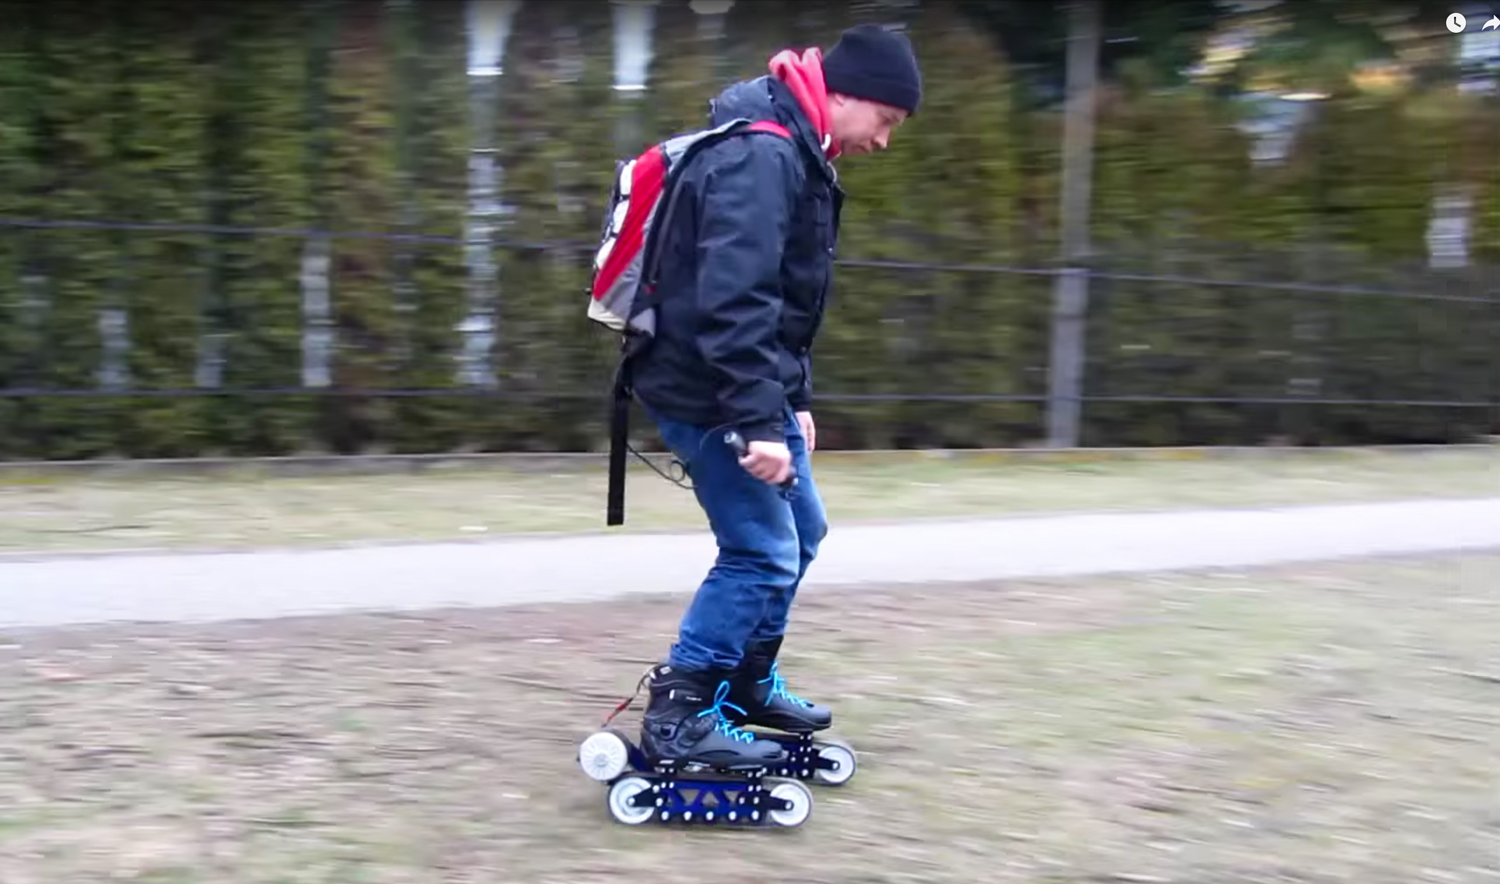 Electric rollerblades go offroad with tank treads for Shark tank motorized skates